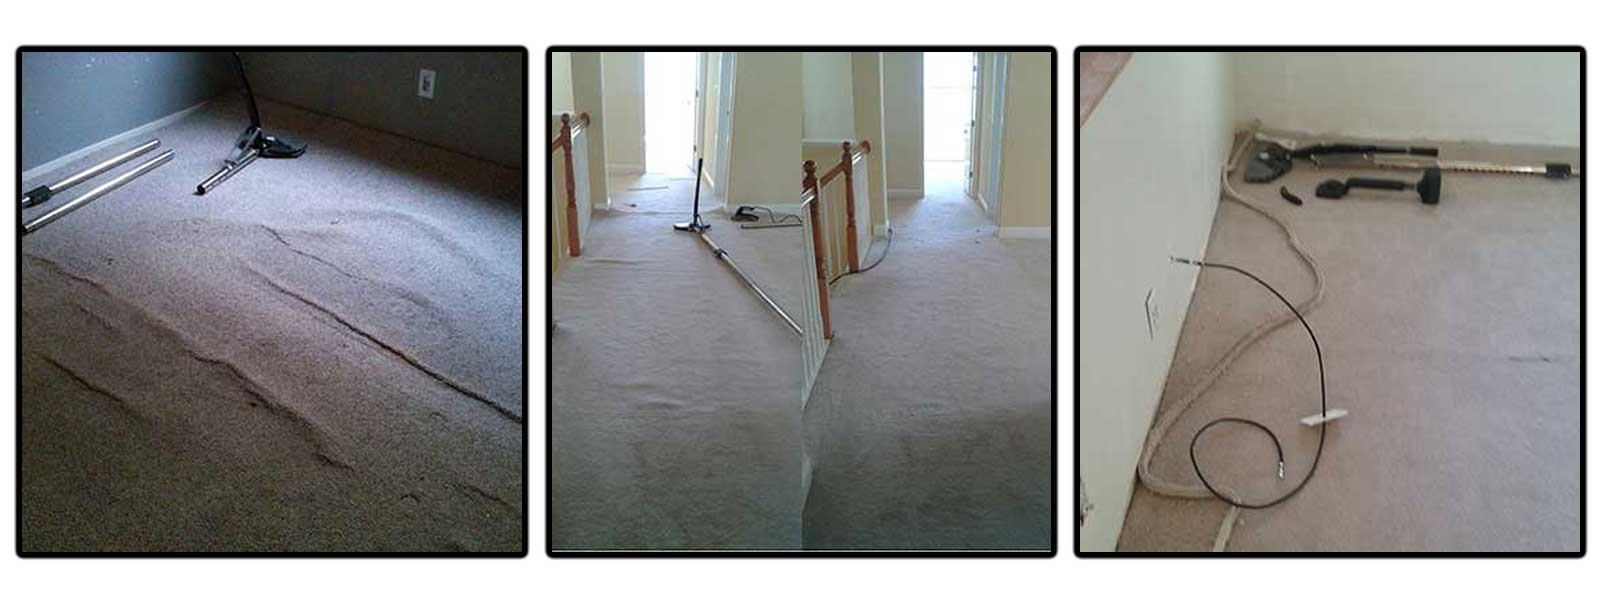 carpet-repair-stretching-installation-services-gold-coast-flooring